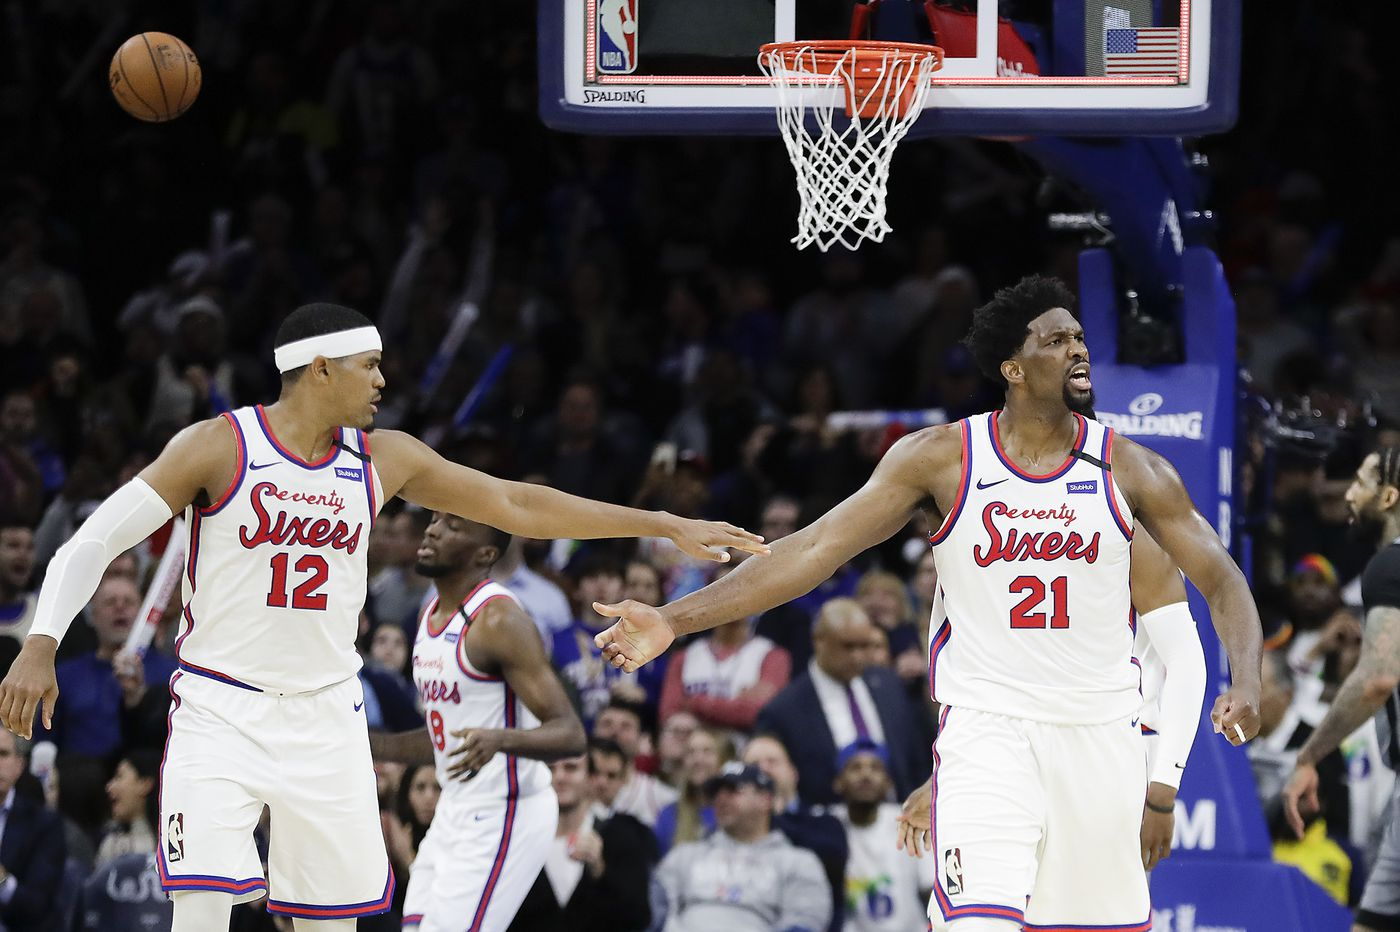 Sixers to open 2020-21 first-half schedule by hosting the Wizards on Dec. 23